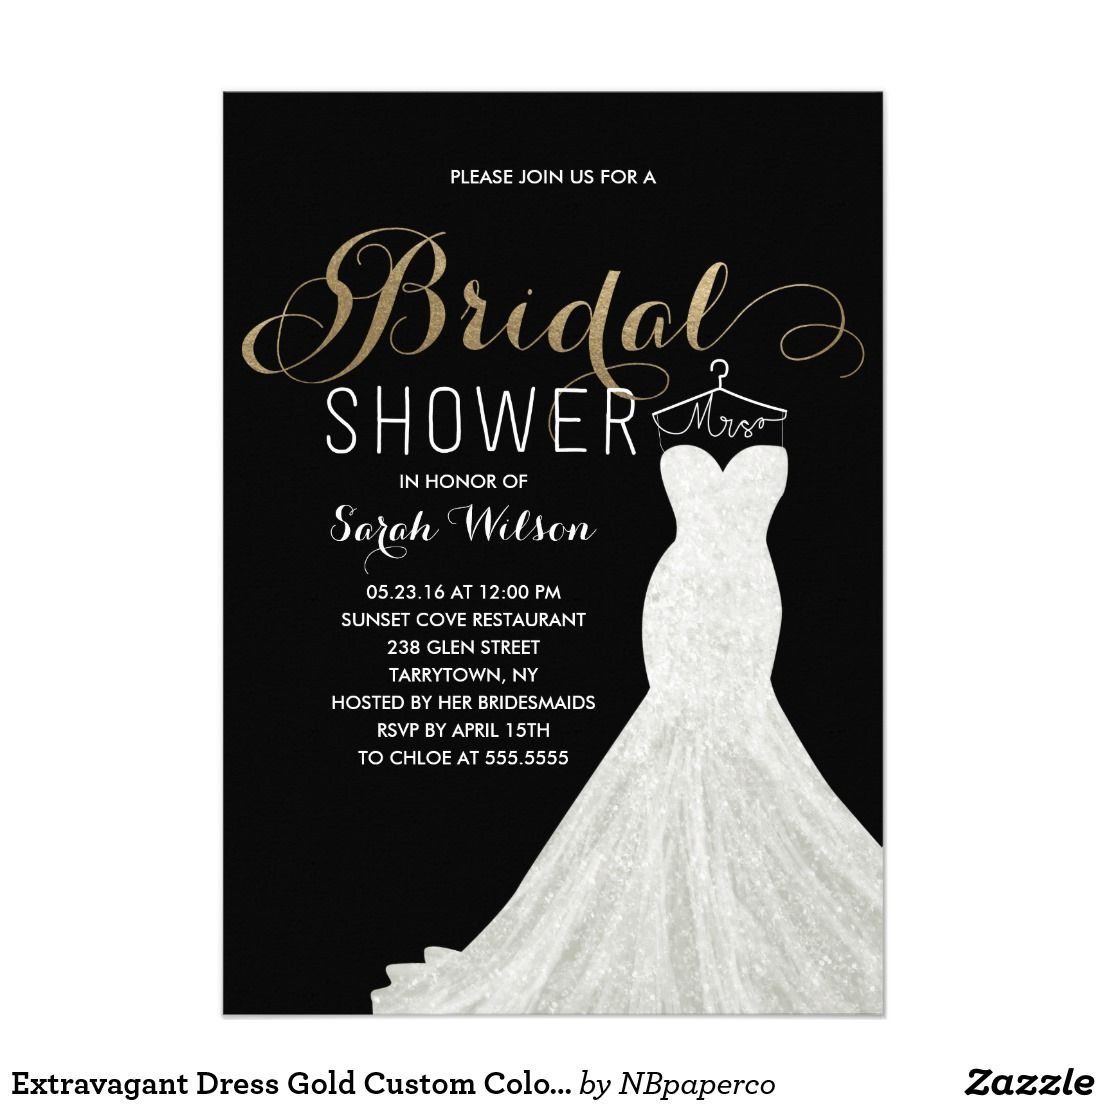 extravagant dress gold custom color bridal shower card send your guests an invite they wont forget this chic and elegant bridal shower invitation